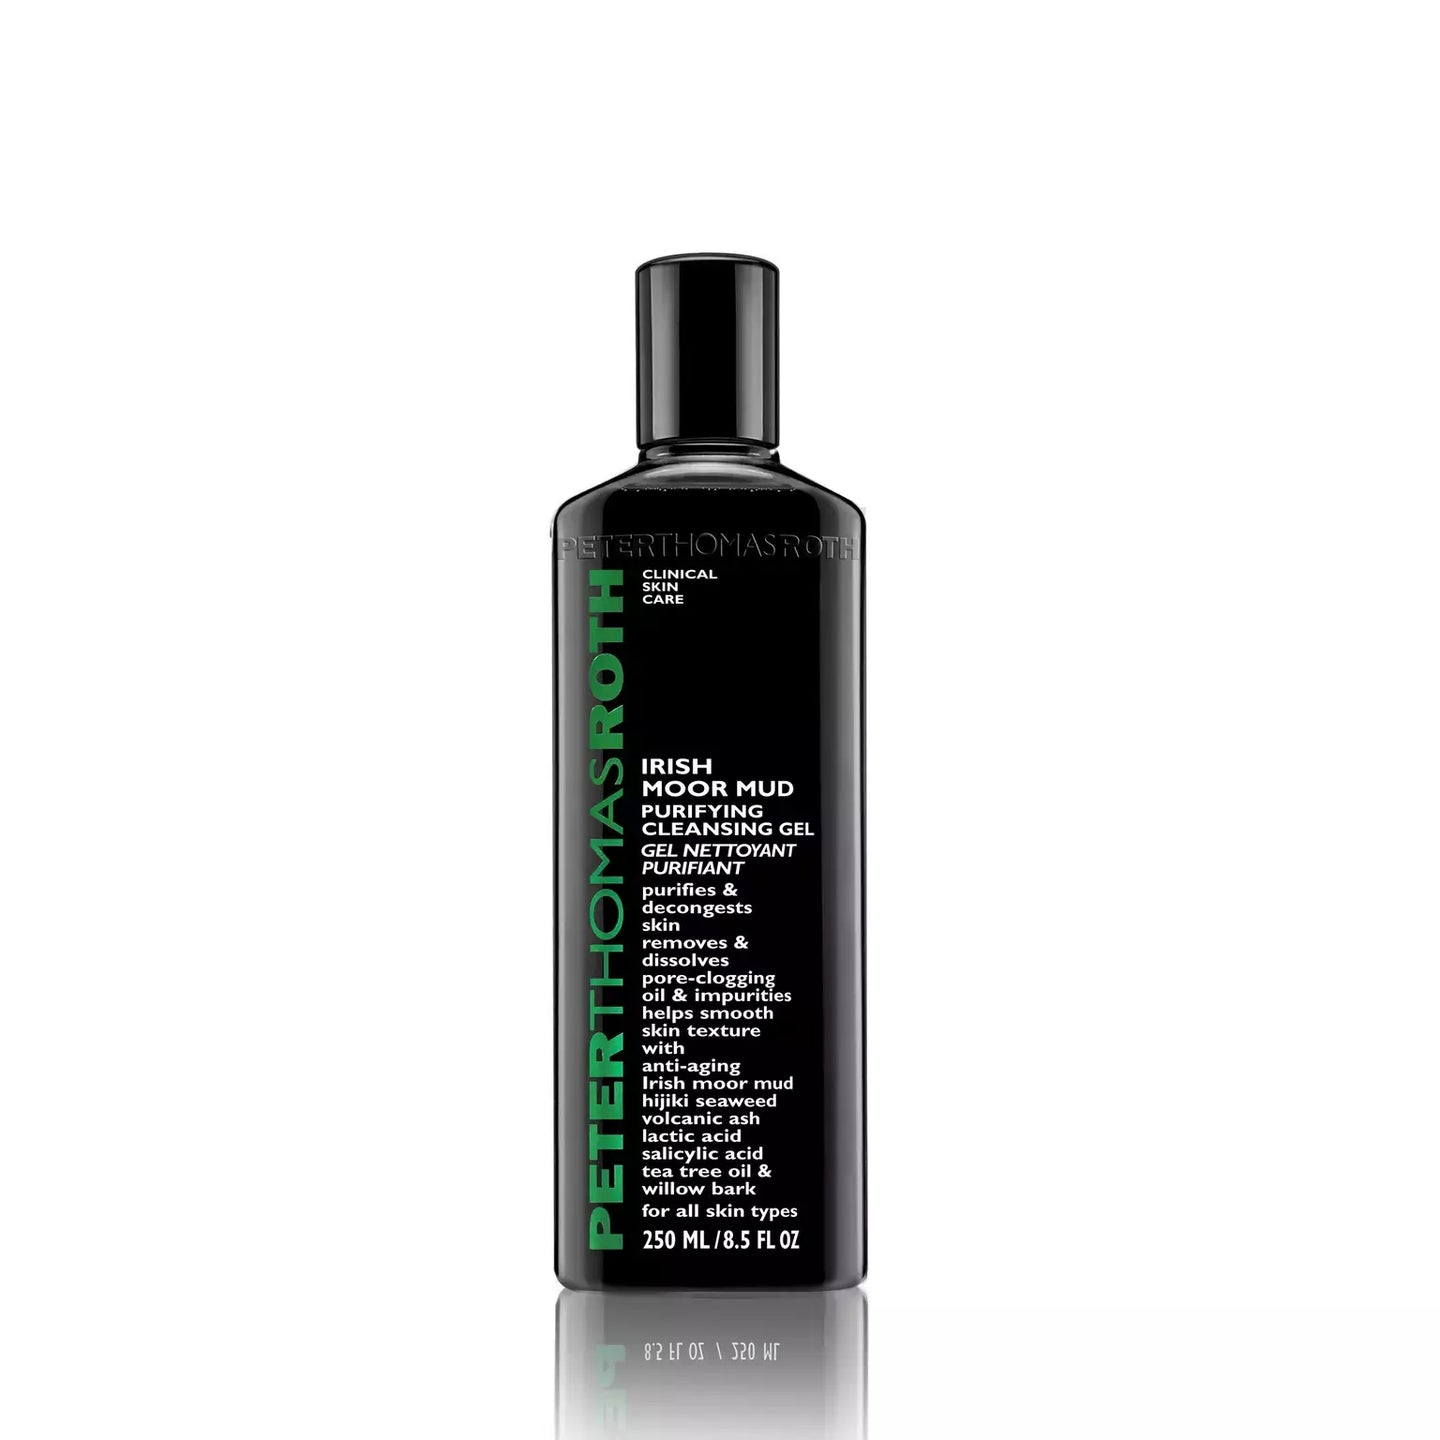 Peter Thomas Roth Irish Moor Mud Purifying Cleansing Gel